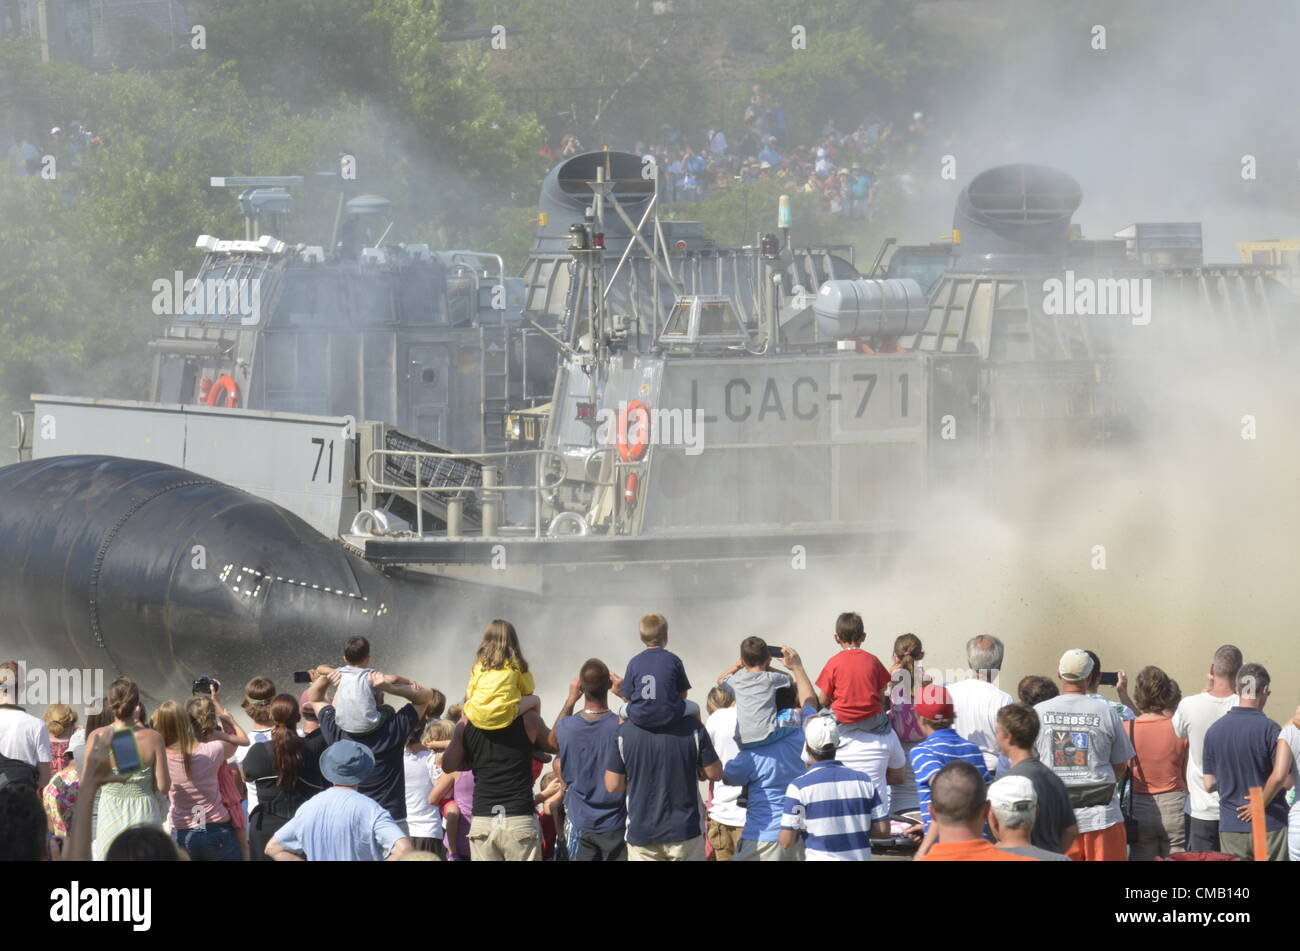 Niantic, Connecticut, July 6, 2012 - A crowd at McCook's Point Park watches a United States Navy hovercraft - Stock Image